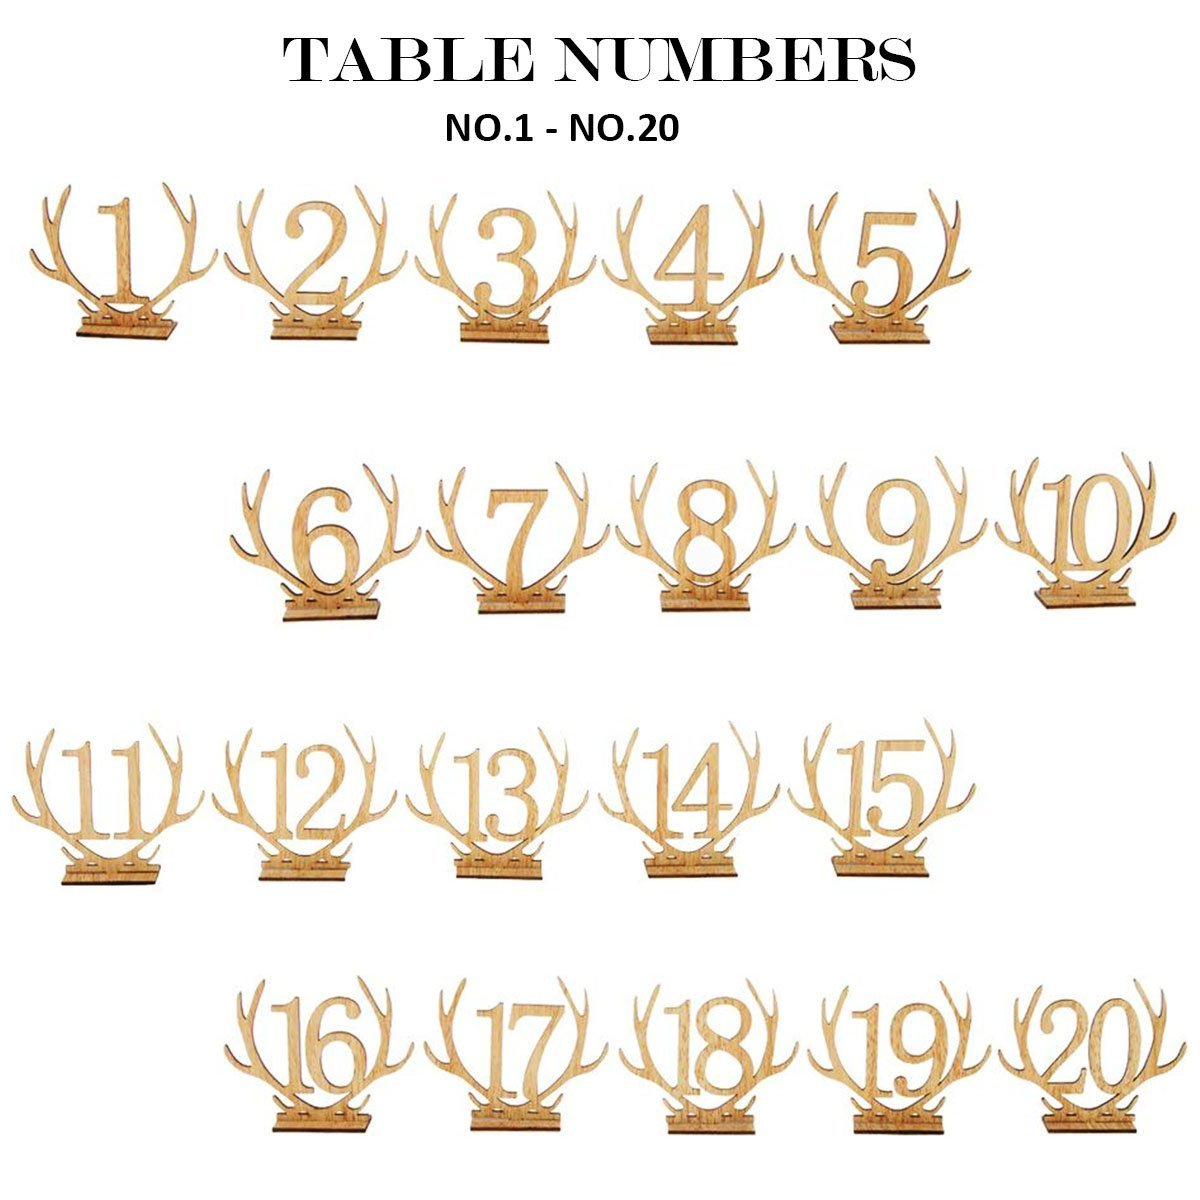 Wellinc Table Numbers 20 Pack (Number 1-20) Wedding Wood Table Numbers Unique Design Party Table Cards for Wedding Events and Banquet by Wellinc (Image #6)